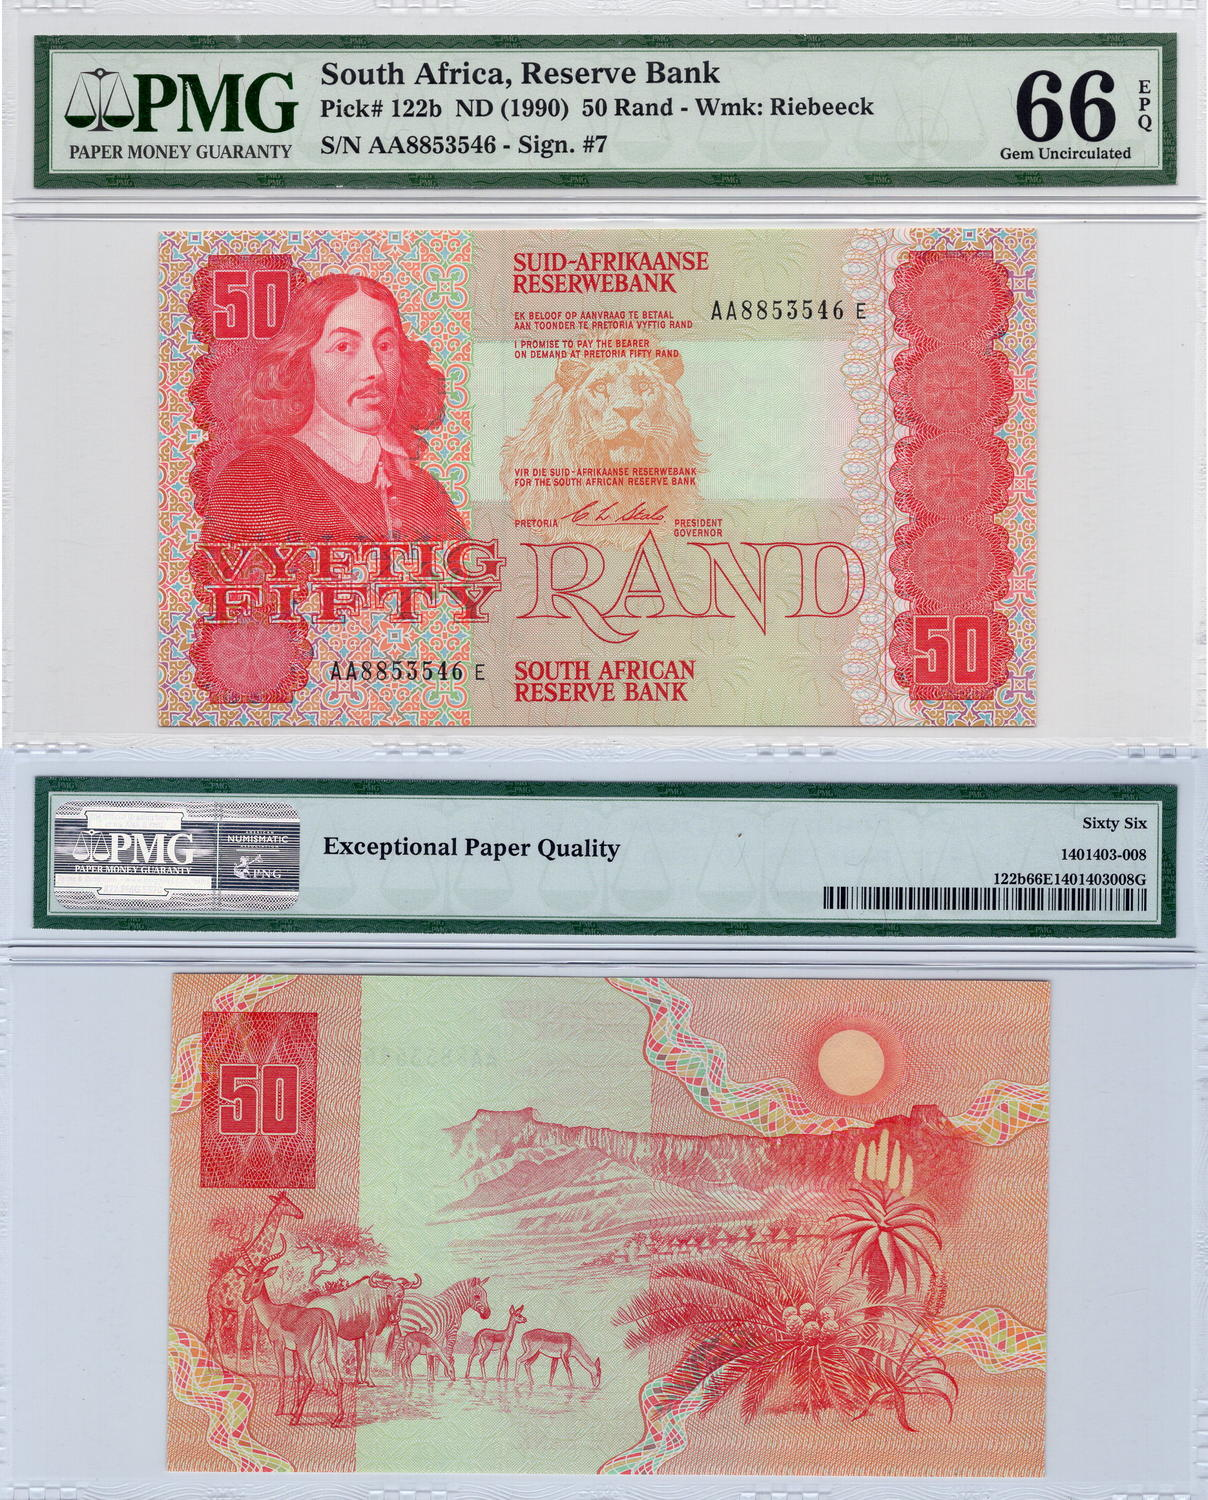 South Africa 50 Rand 1990 Unc Pmg 66 P122b Serial Number Aa8853546e First Prefix 75